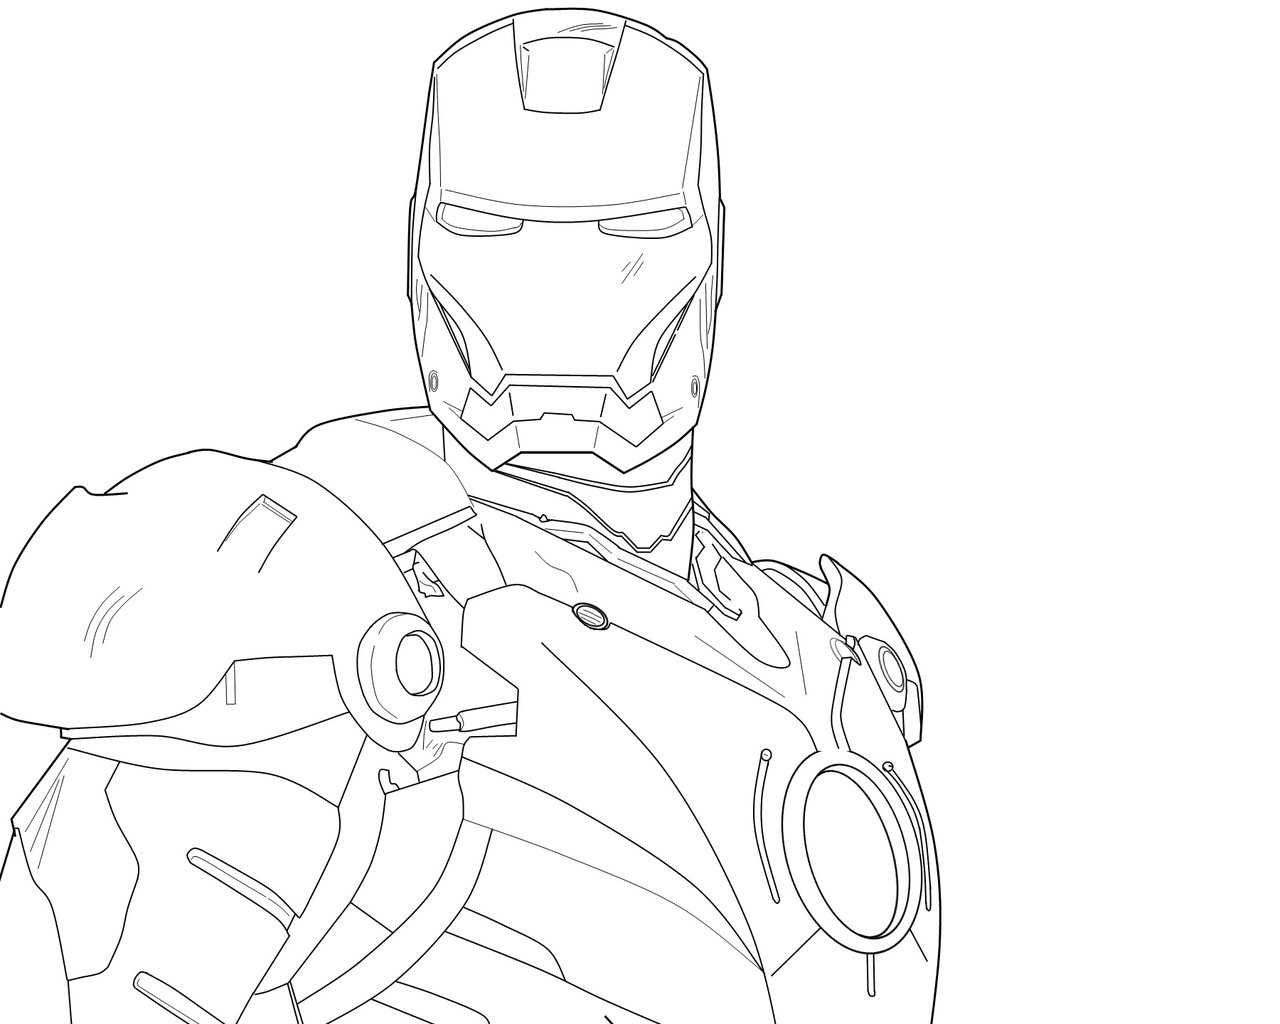 D Line Drawings You Tube : Iron man drawing pictures d